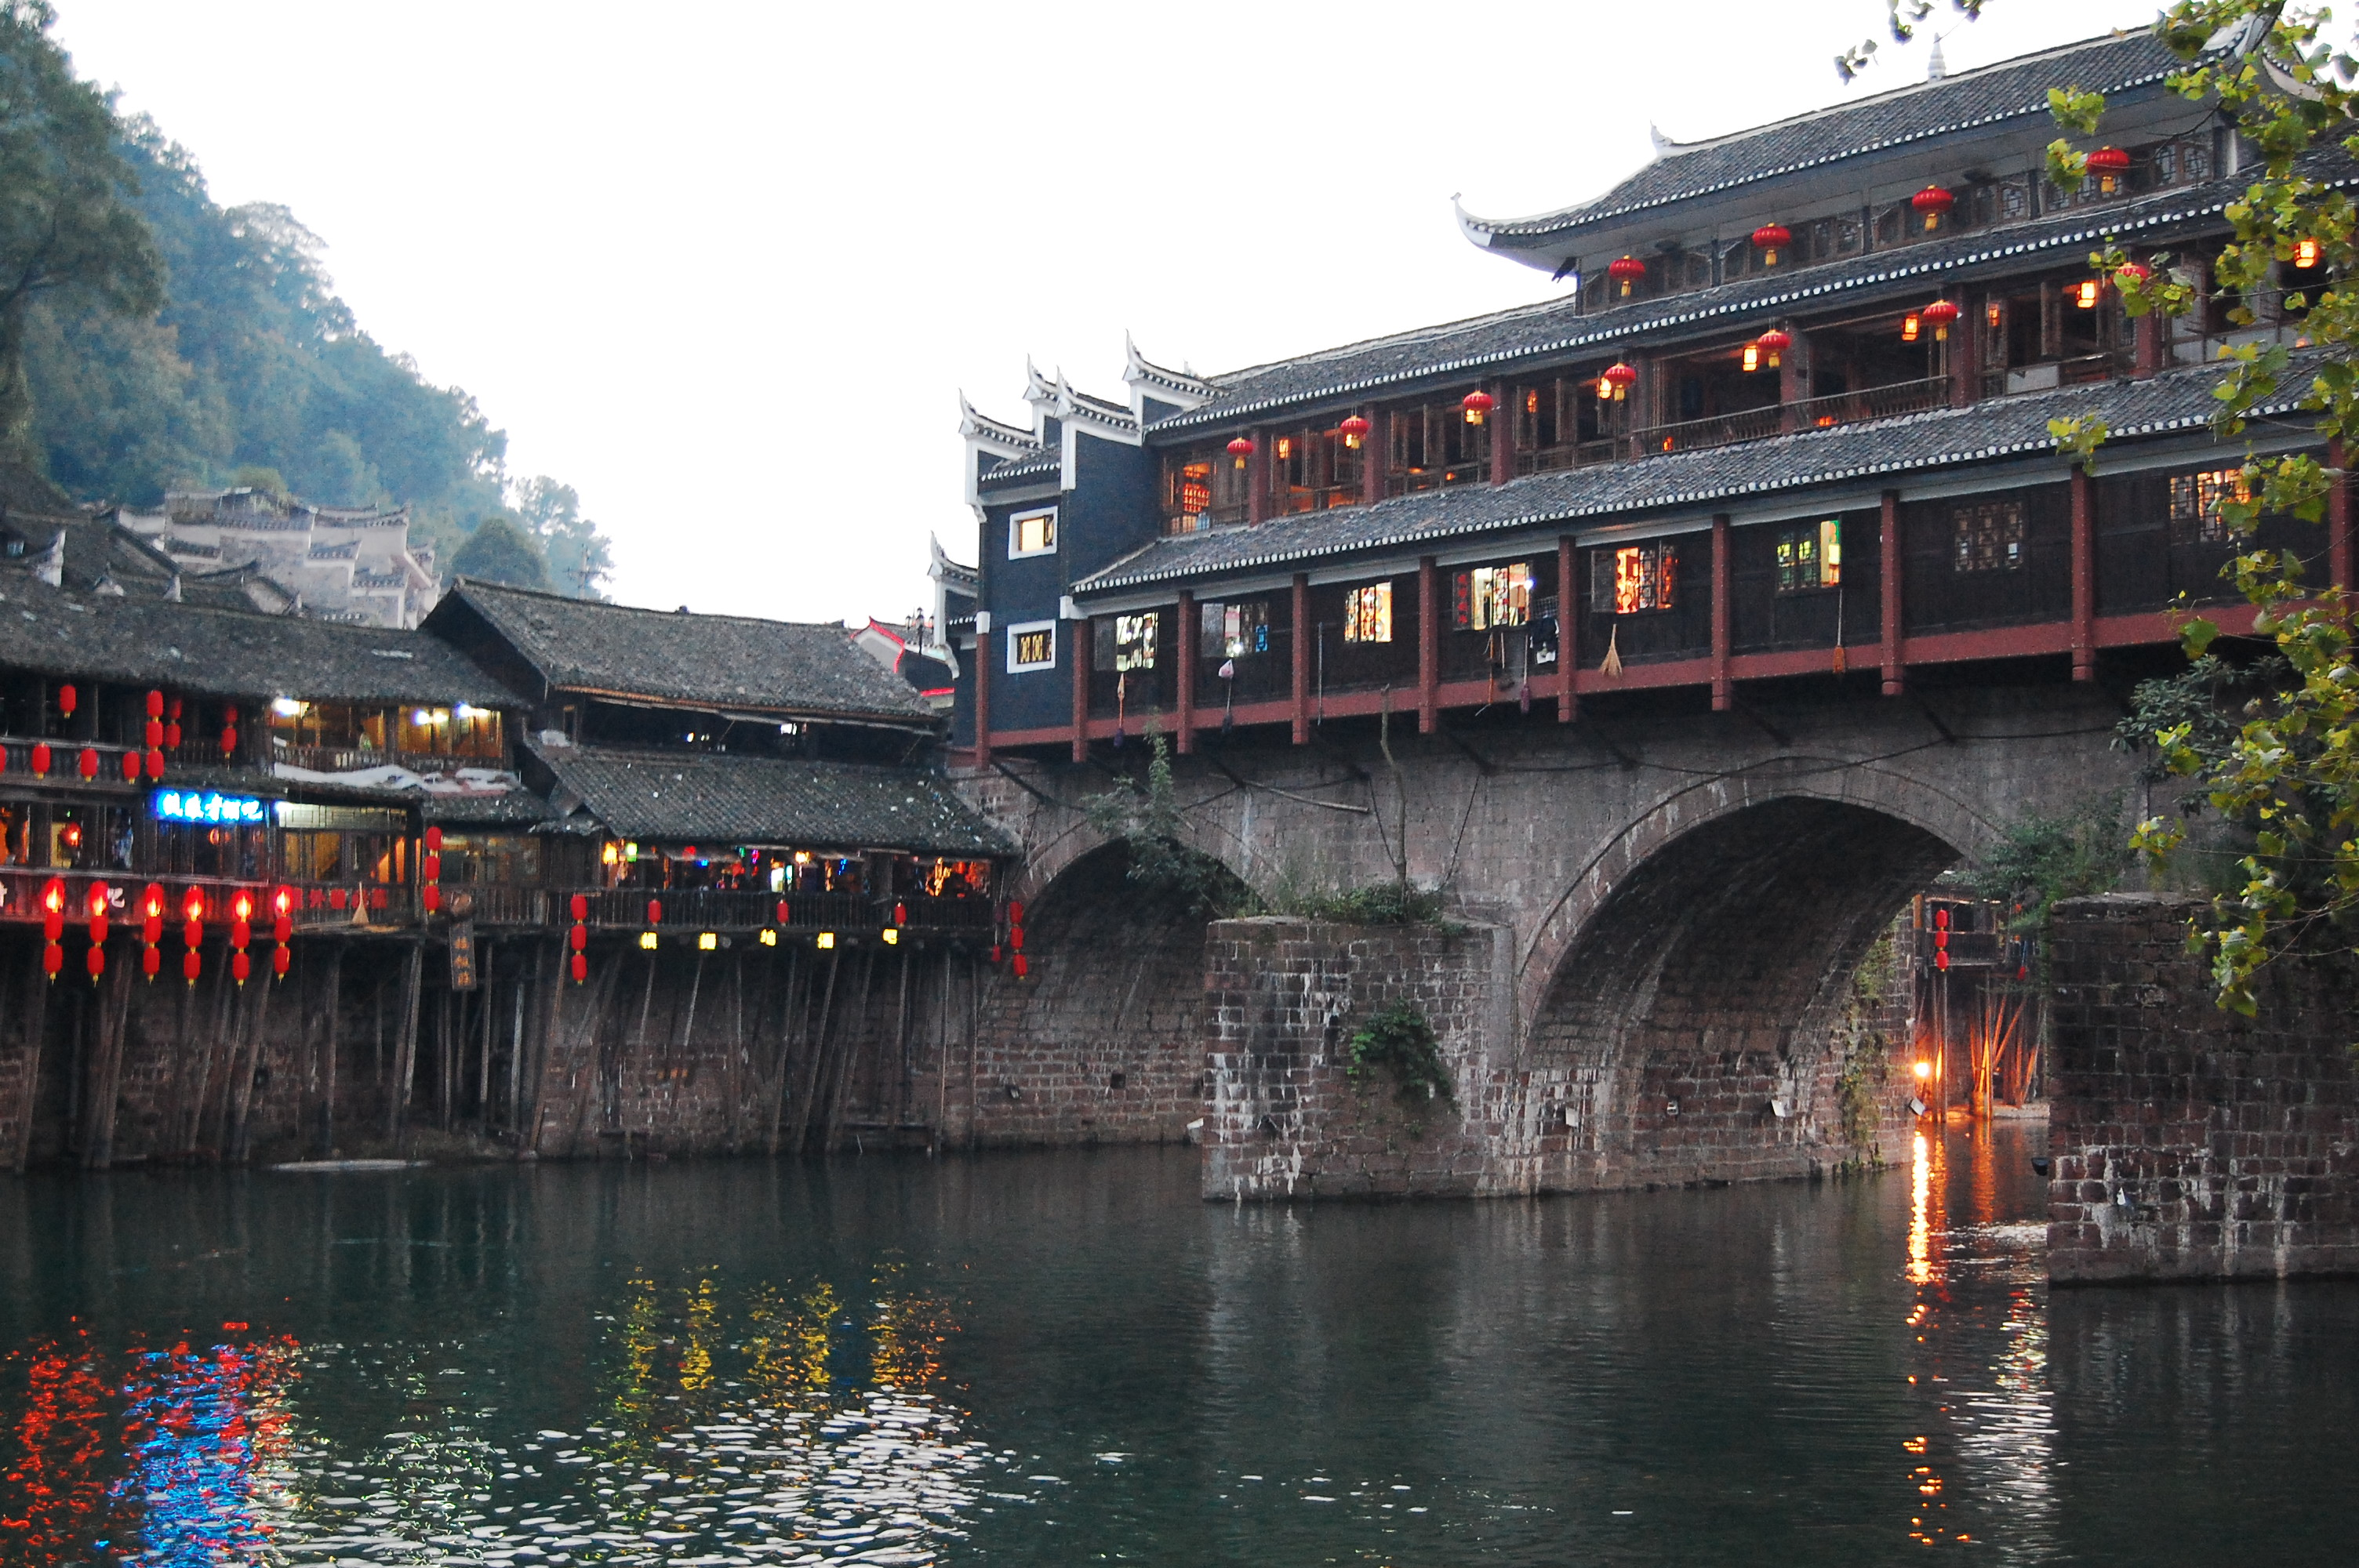 fenghuang ancient towns in china